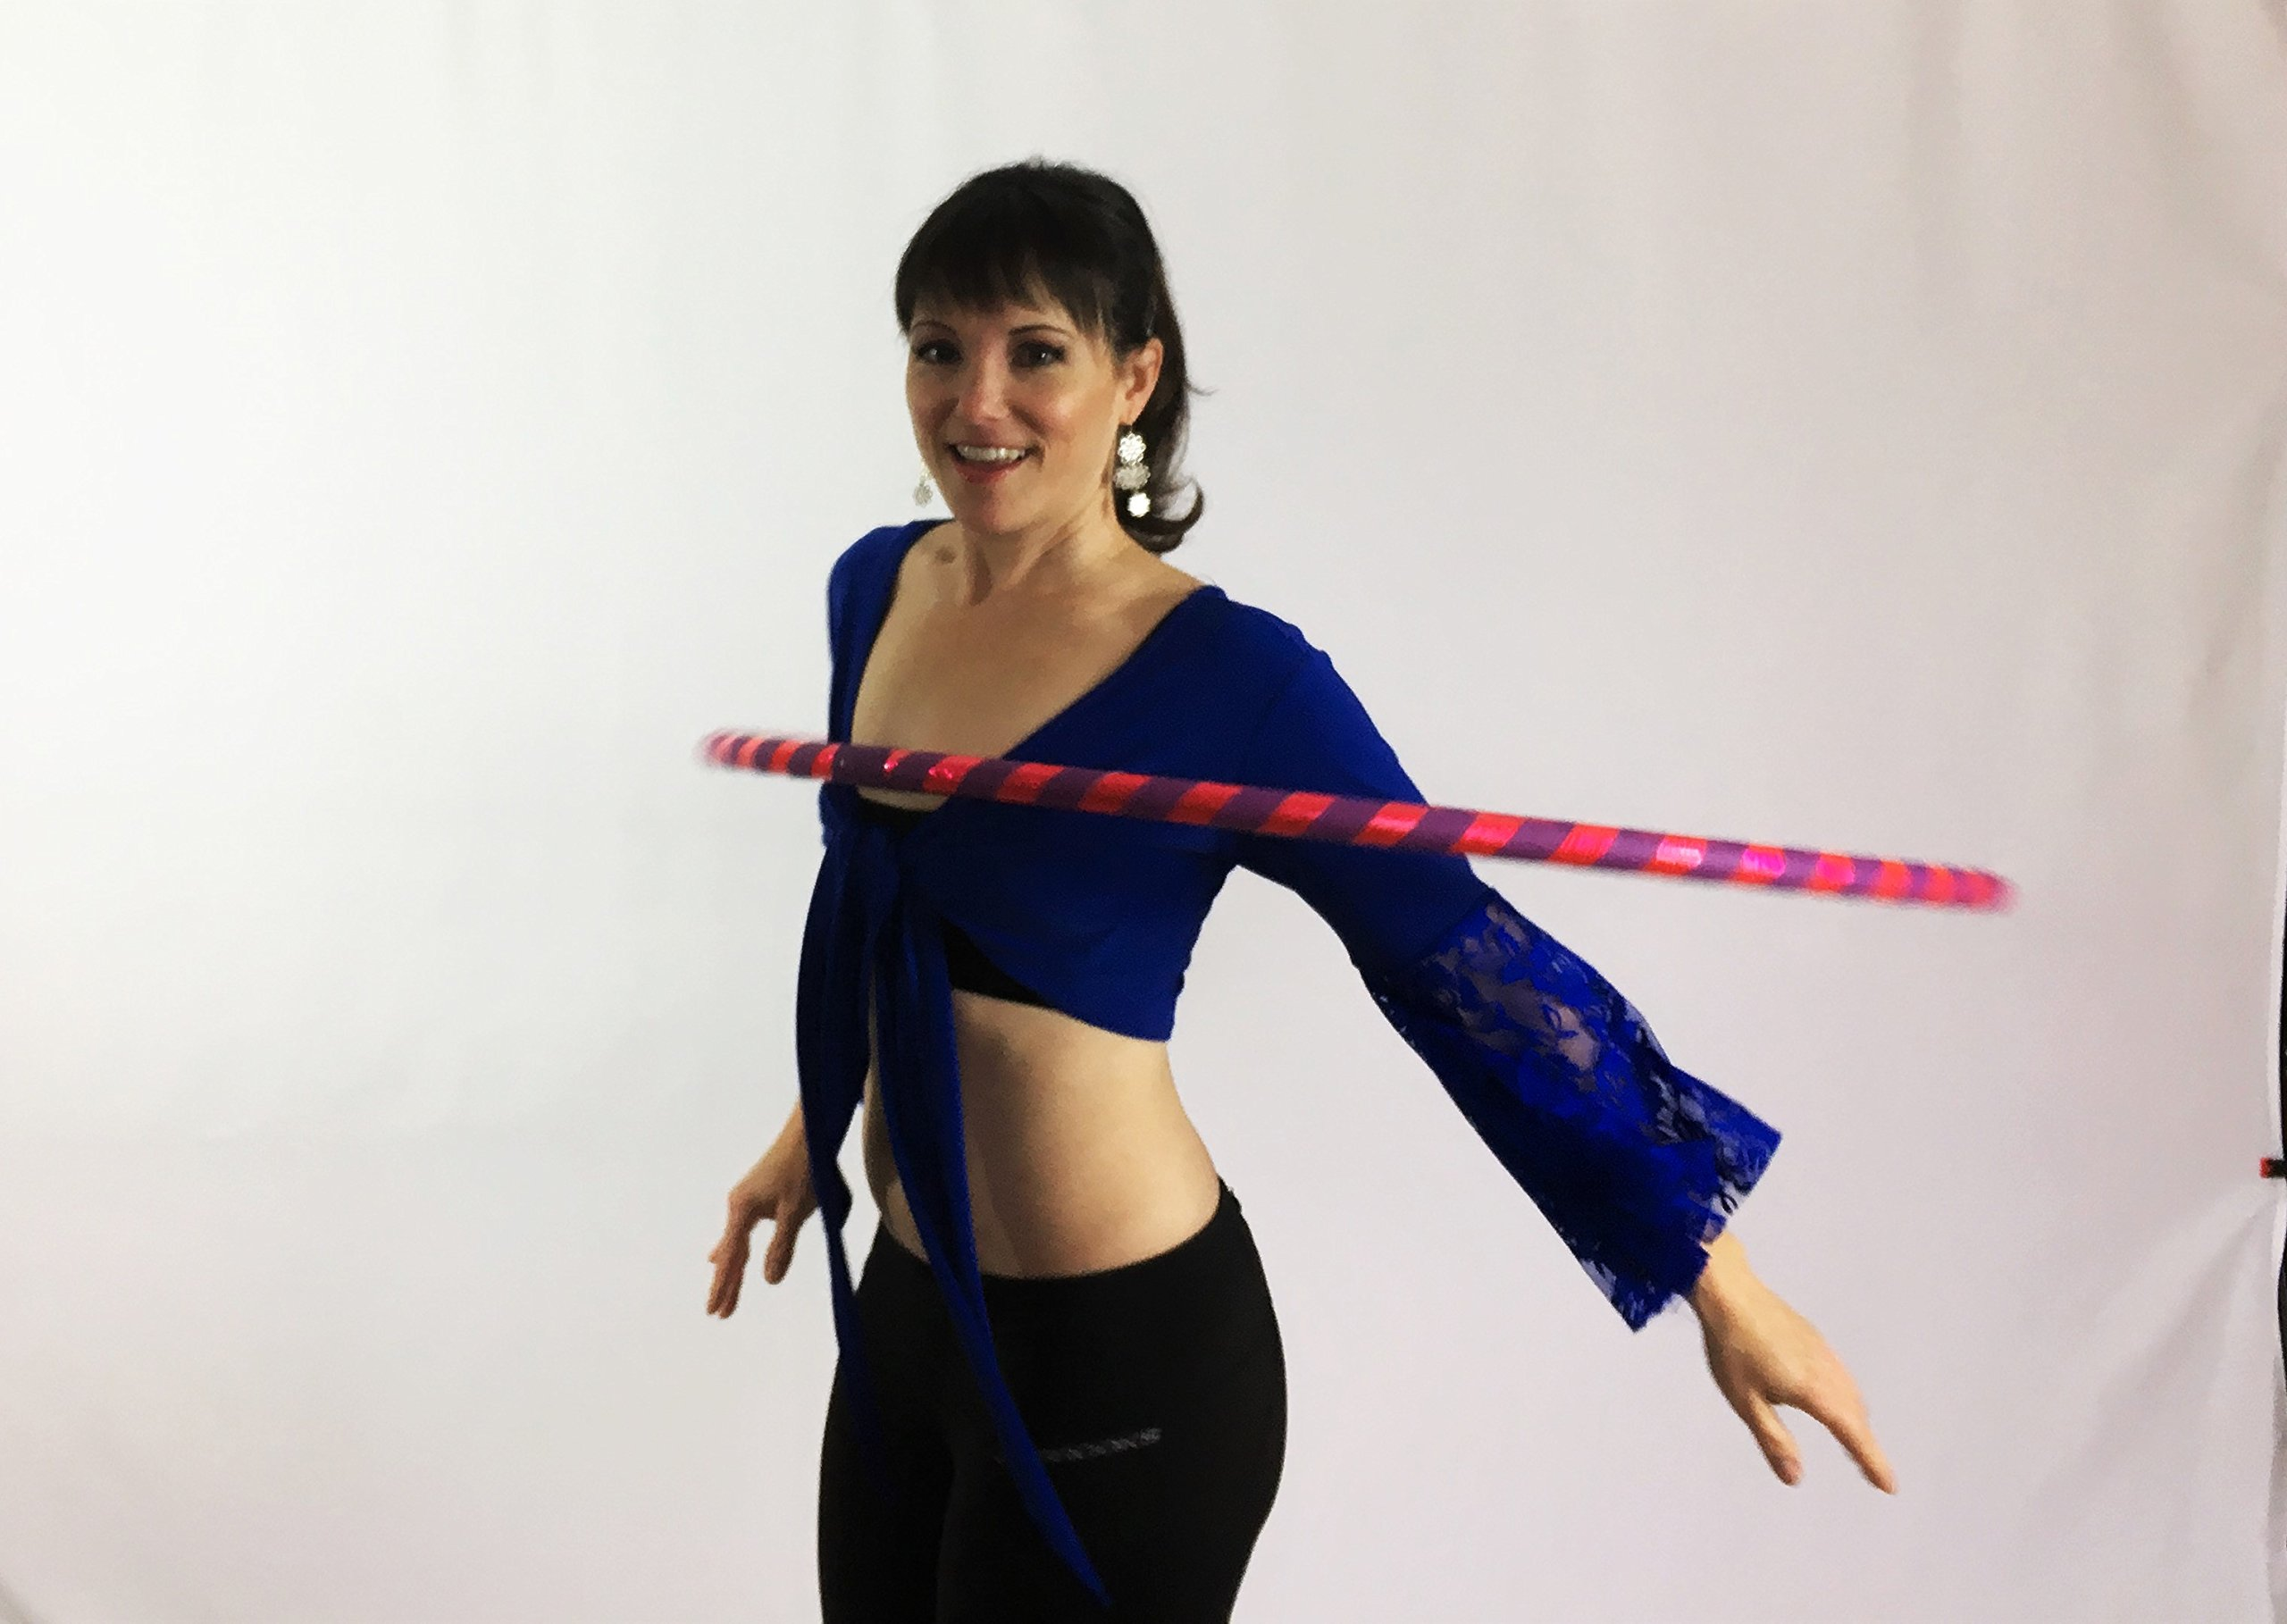 Weighted Hula Hoop for Exercise and Fitness - Glitter & Prismatic Tapes by Canyon Hoops (Image #4)